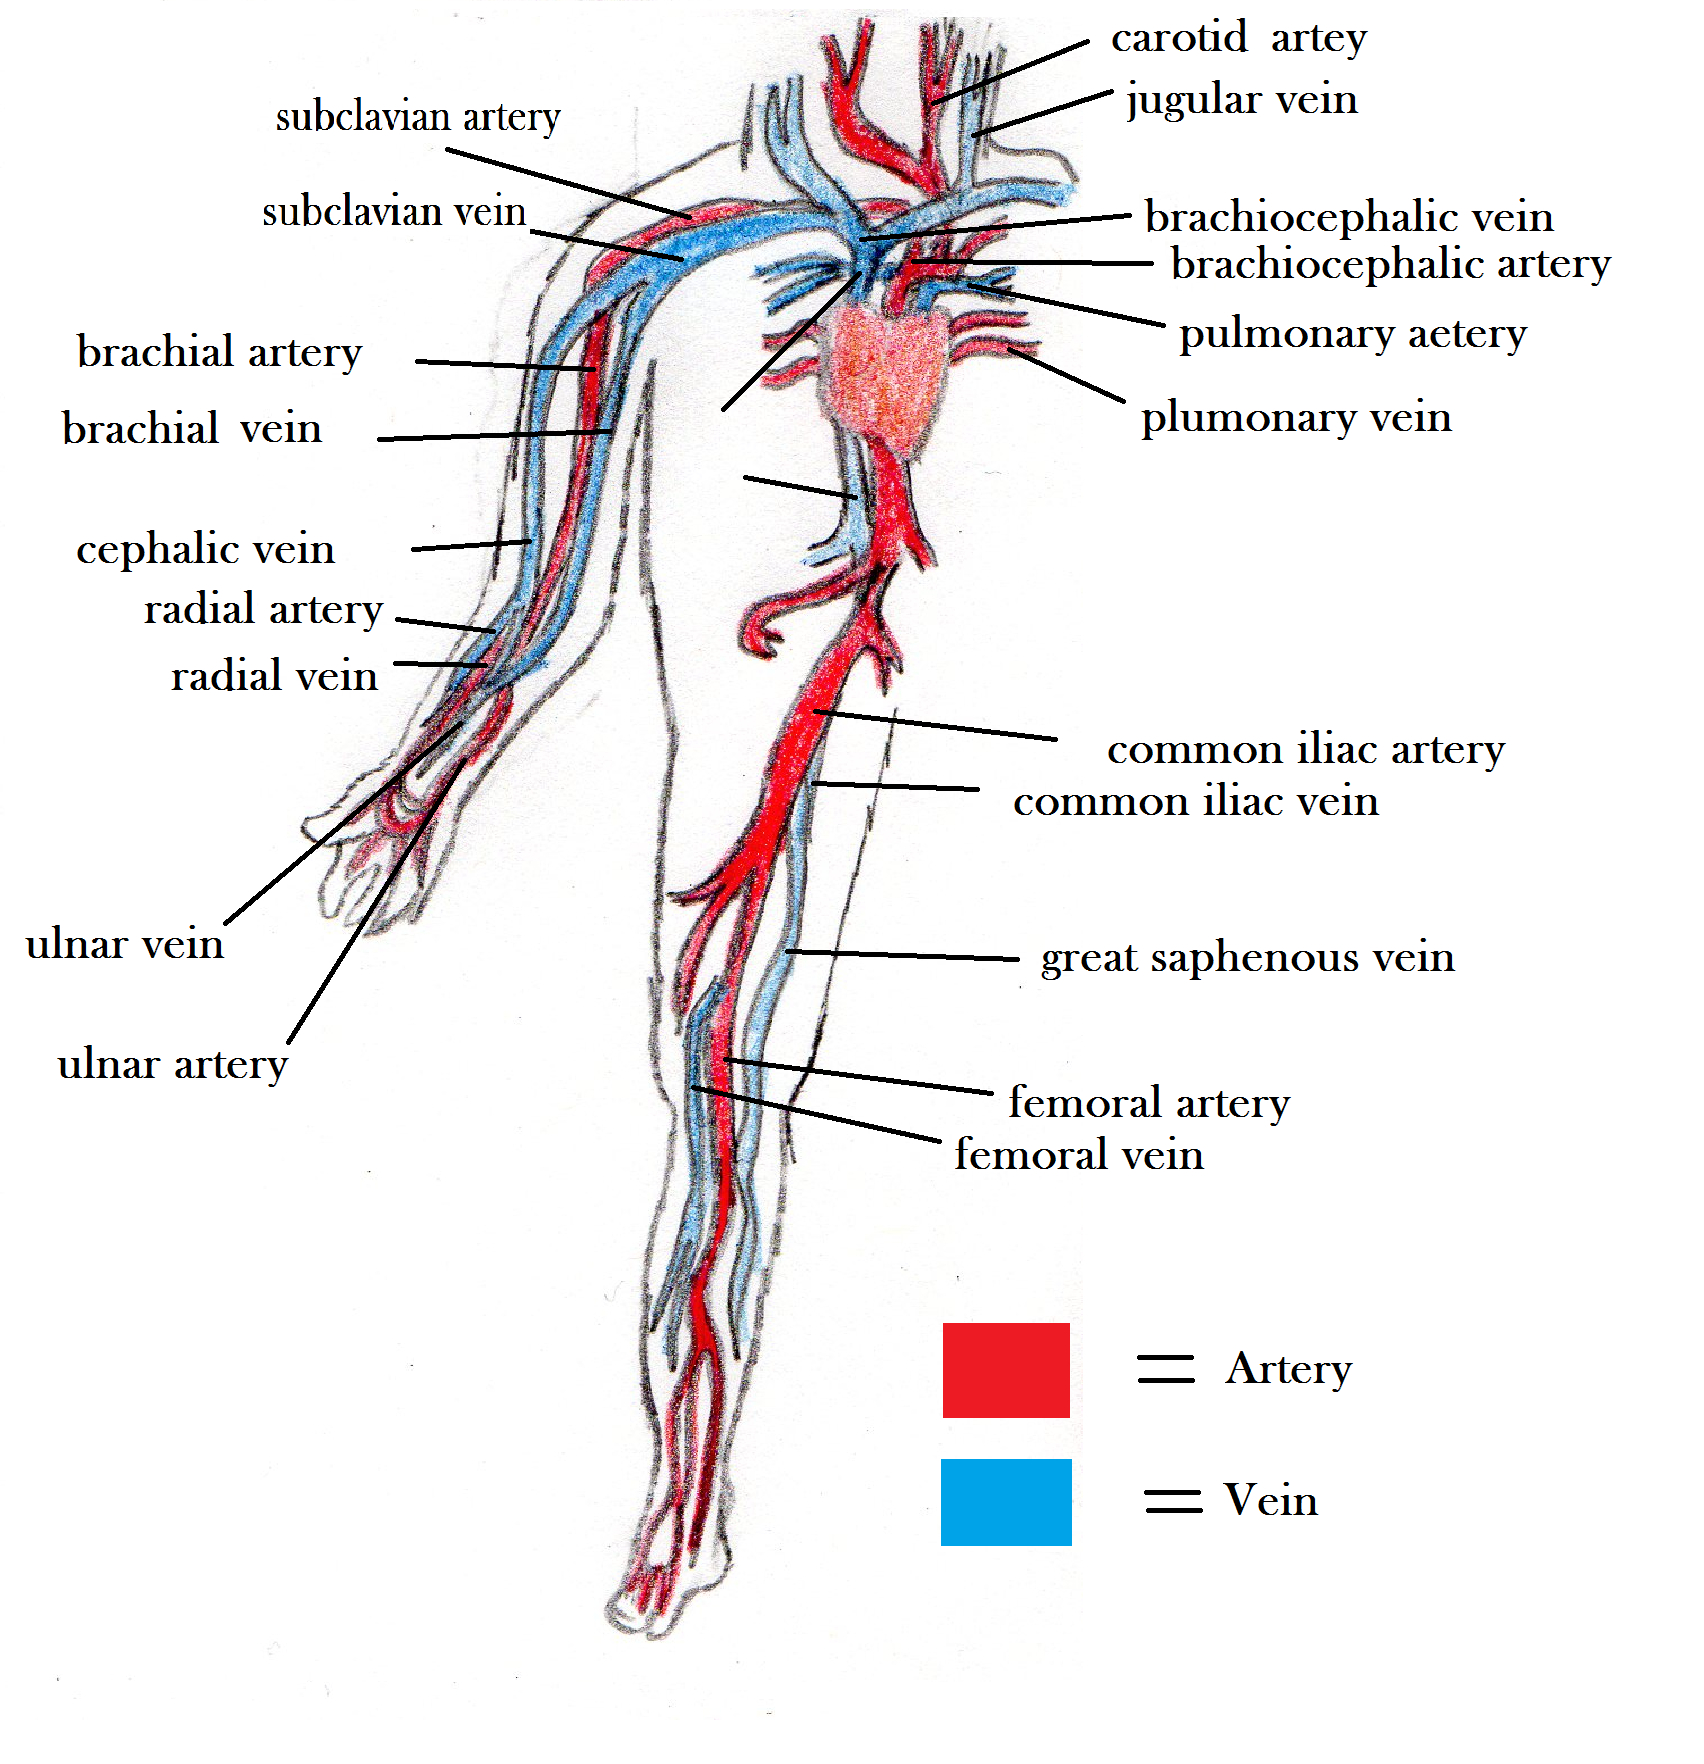 Arteries And Veins Diagram Arteries And Veins Blood Vessel Diagram The Circulatory System